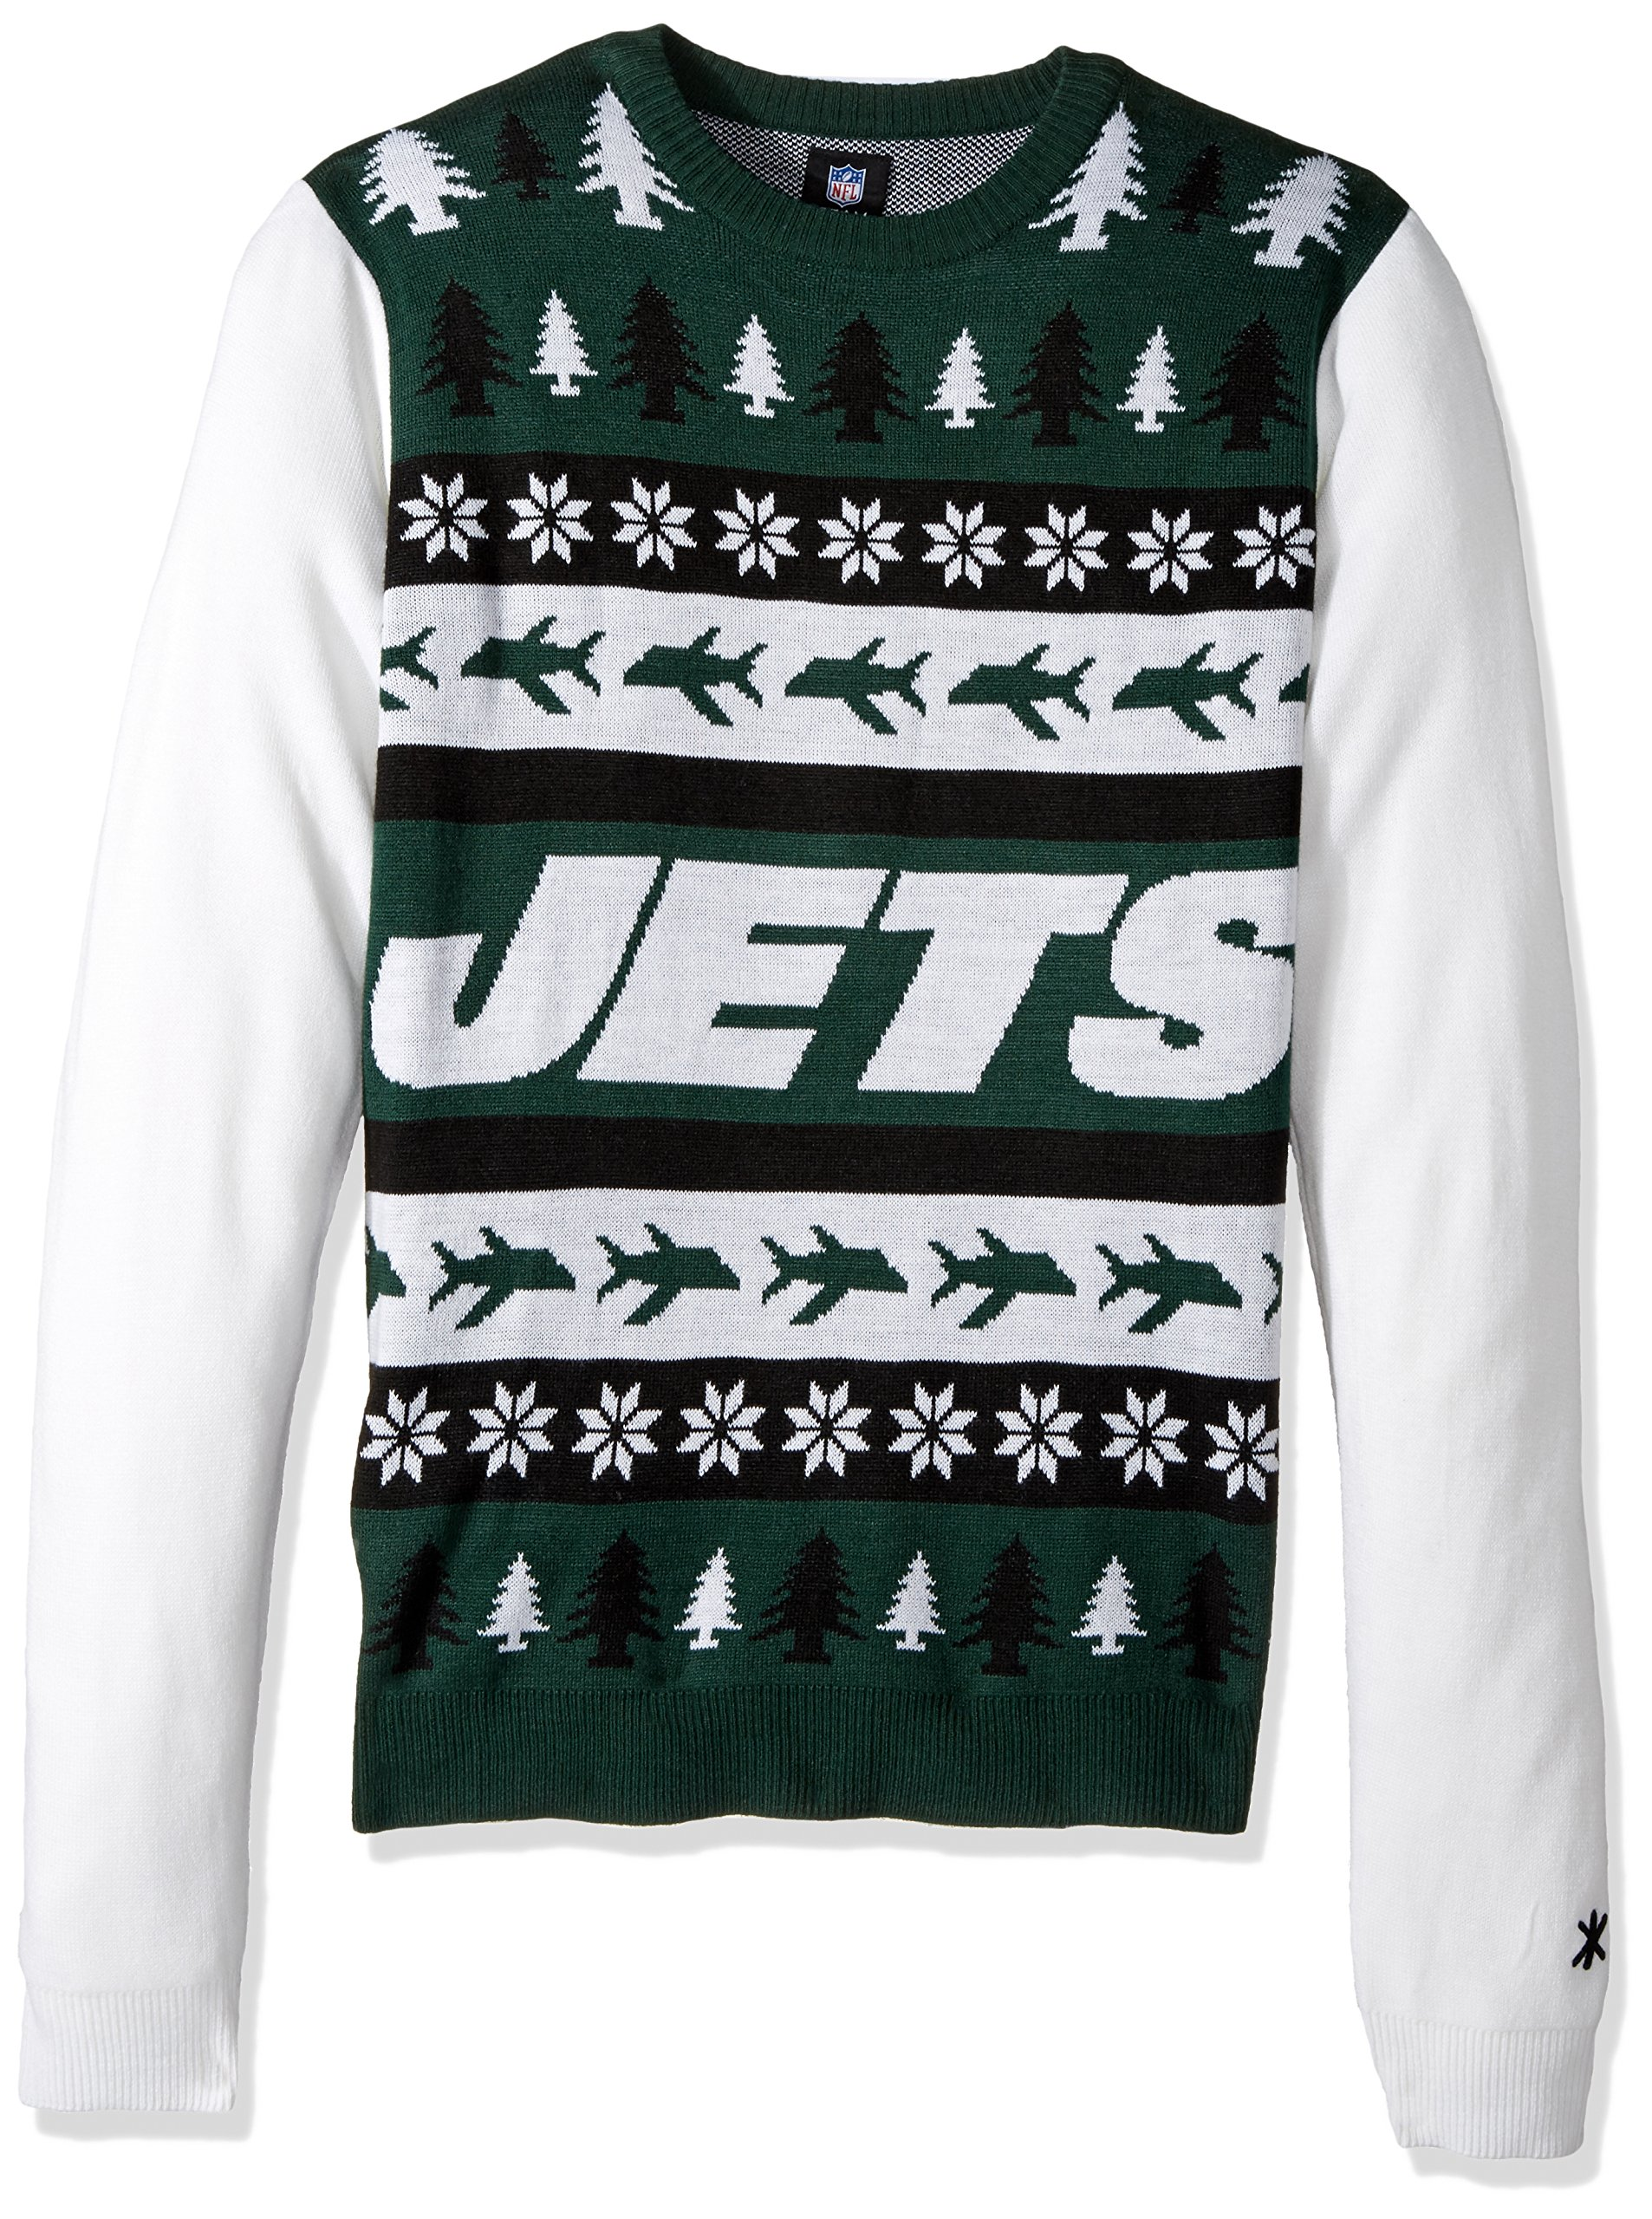 FOCO New York Jets One Too Many Ugly Sweater Large